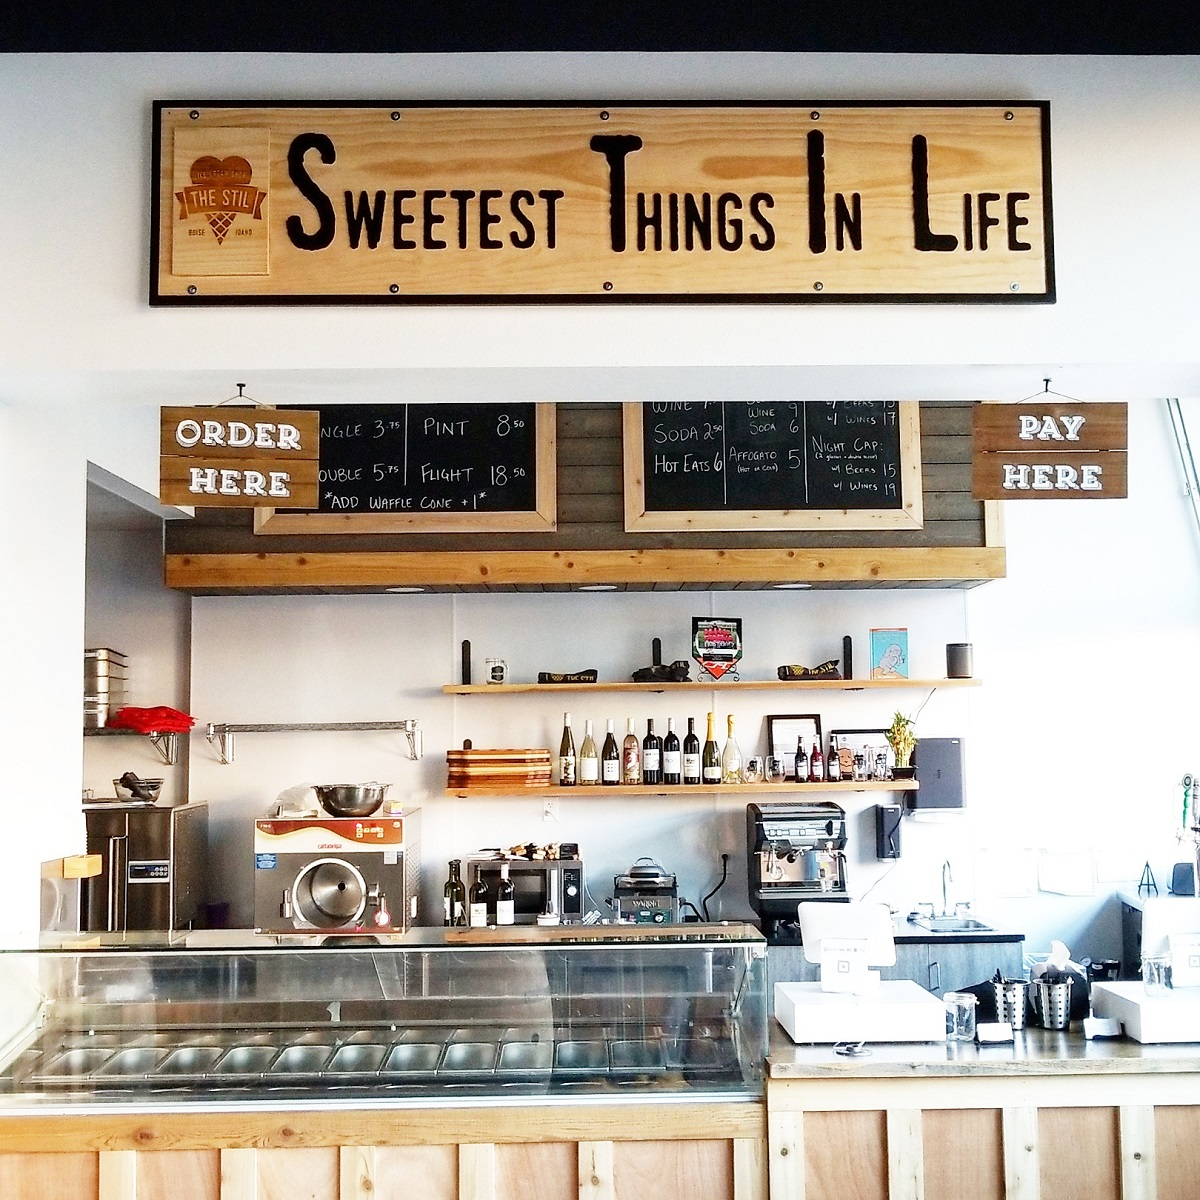 sweetest-things-in-life-sign-1200.jpg